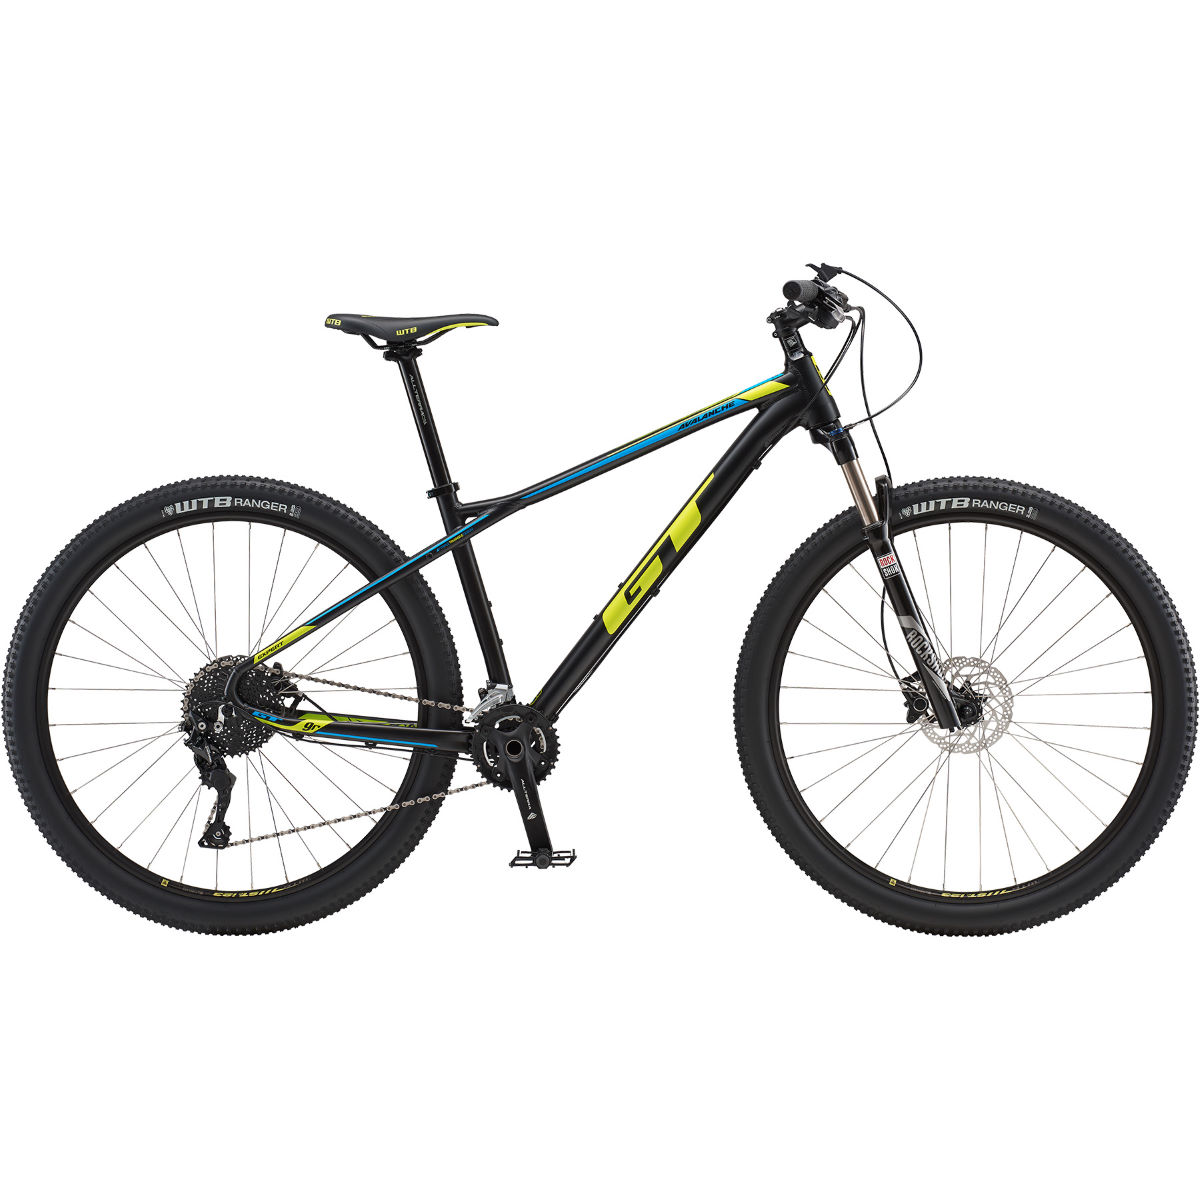 VTT semi-rigide GT Avalanche Expert 29 - Large Stock Bike Noir mat